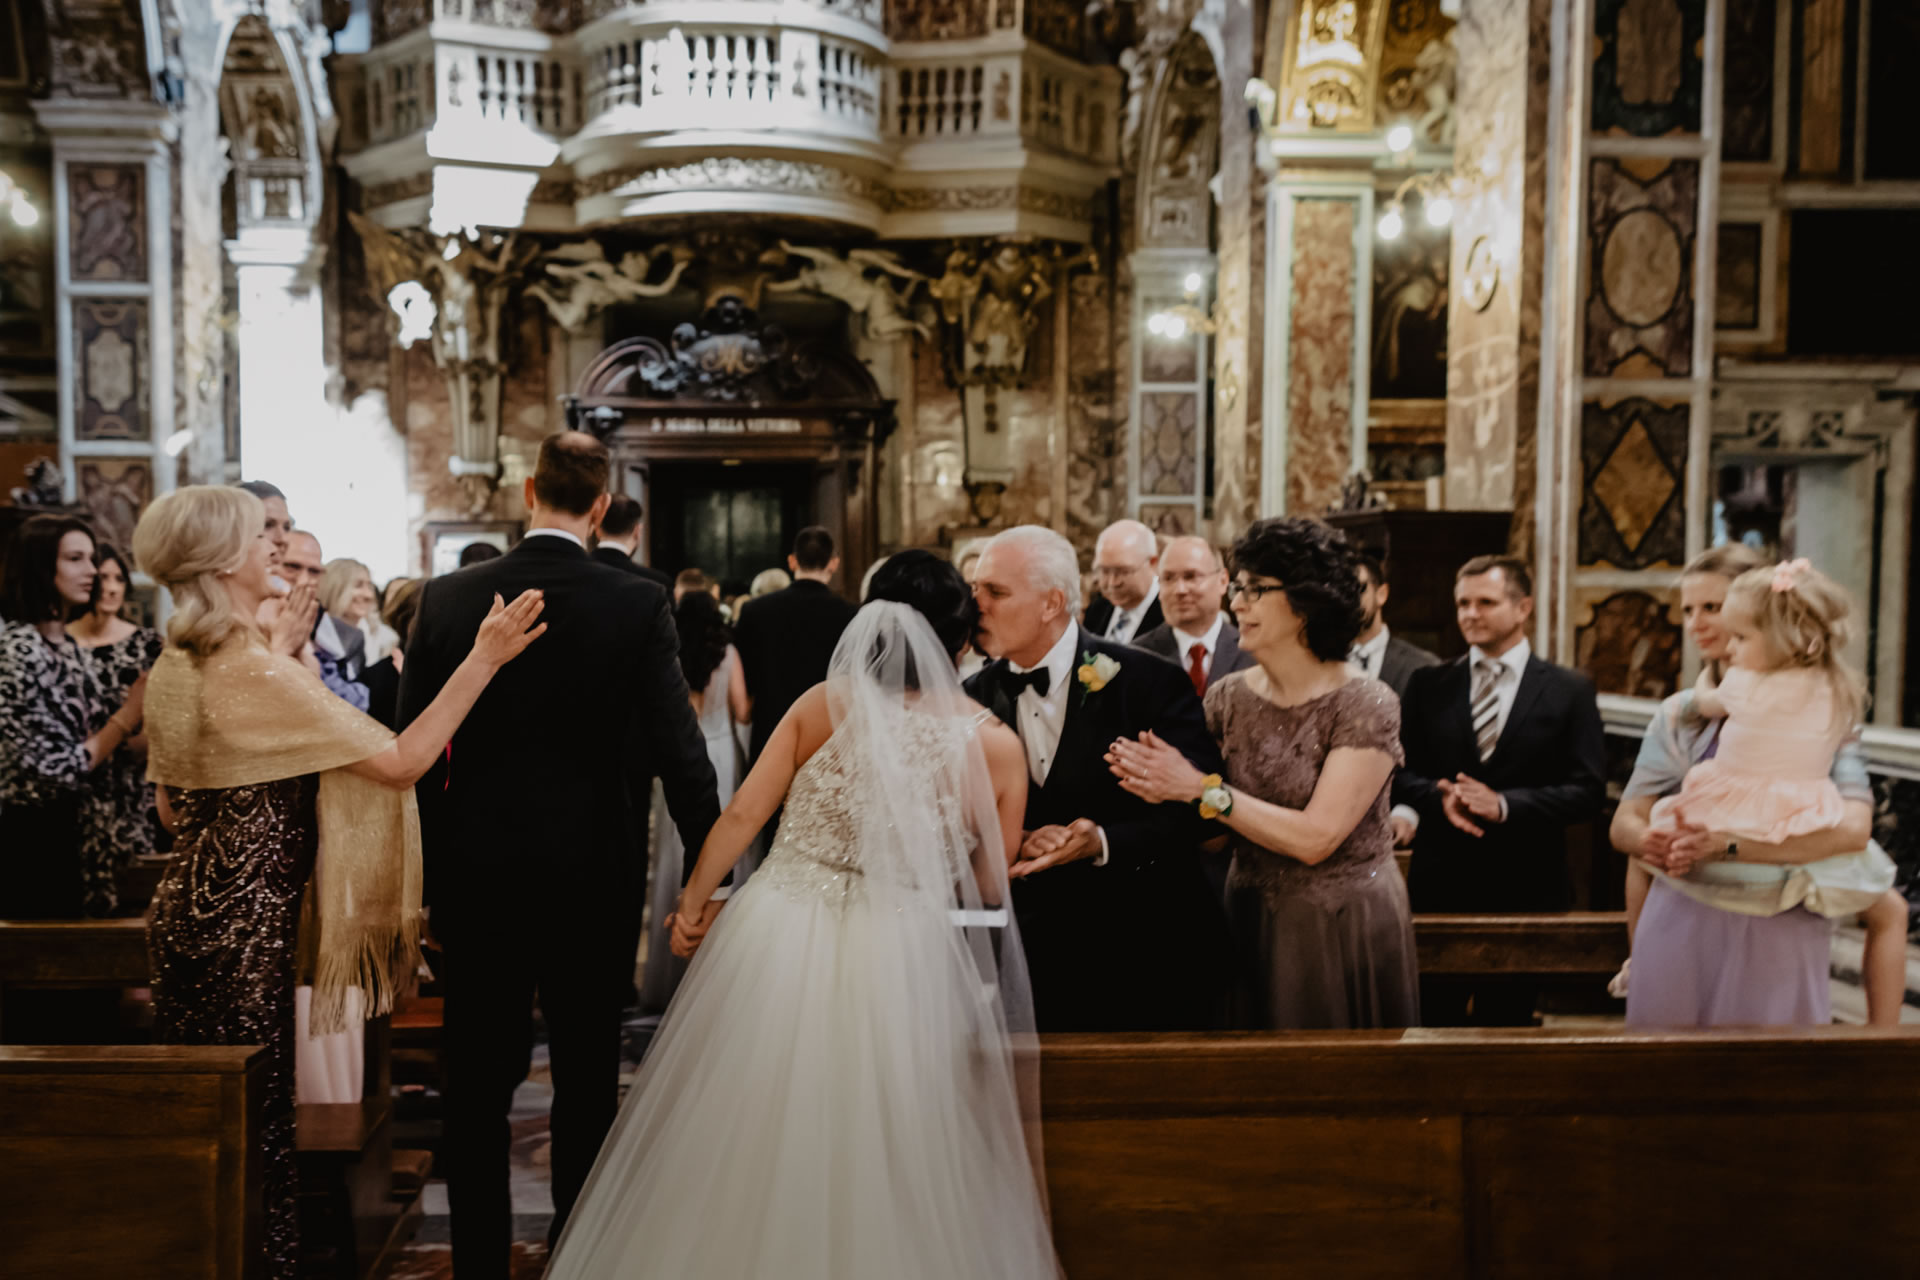 - 23 :: A breath-taking wedding in Rome, the eternal city :: Luxury wedding photography - 22 ::  - 23